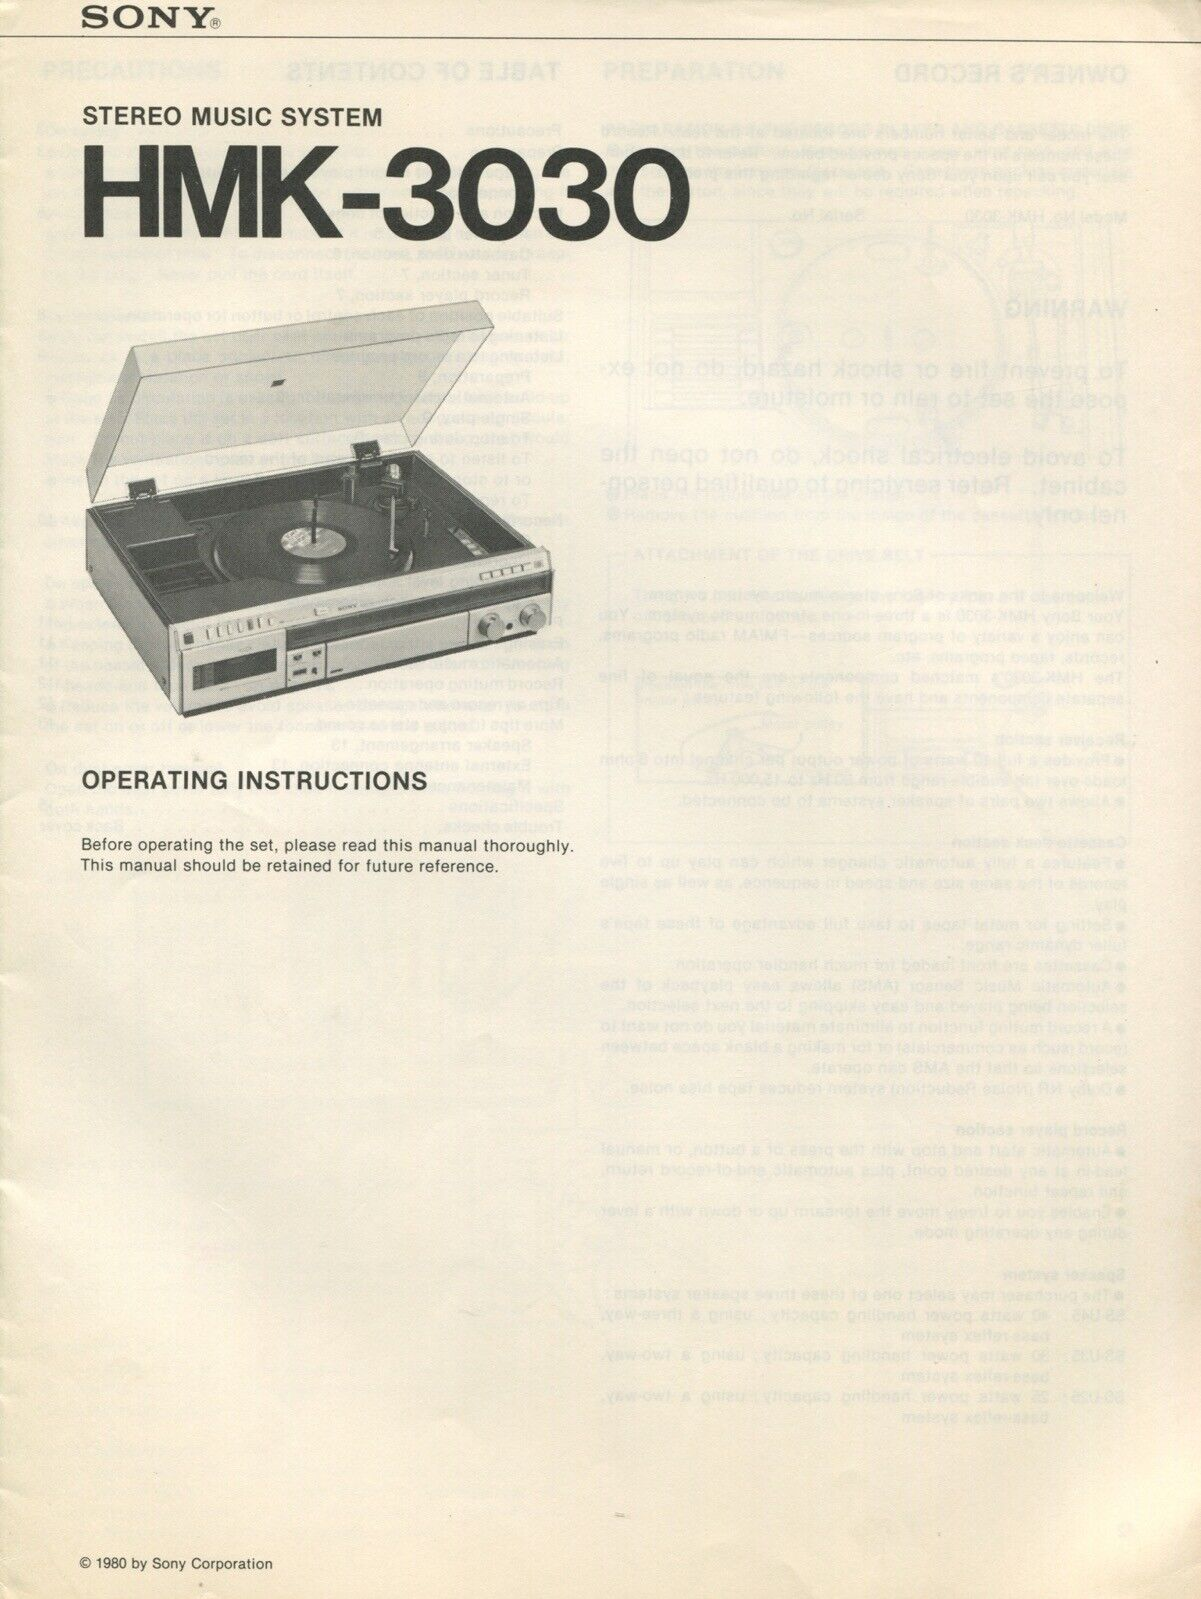 Sony HMK-3030 Original Stereo Music System Owners Manual 1 of 2Only 1  available ...